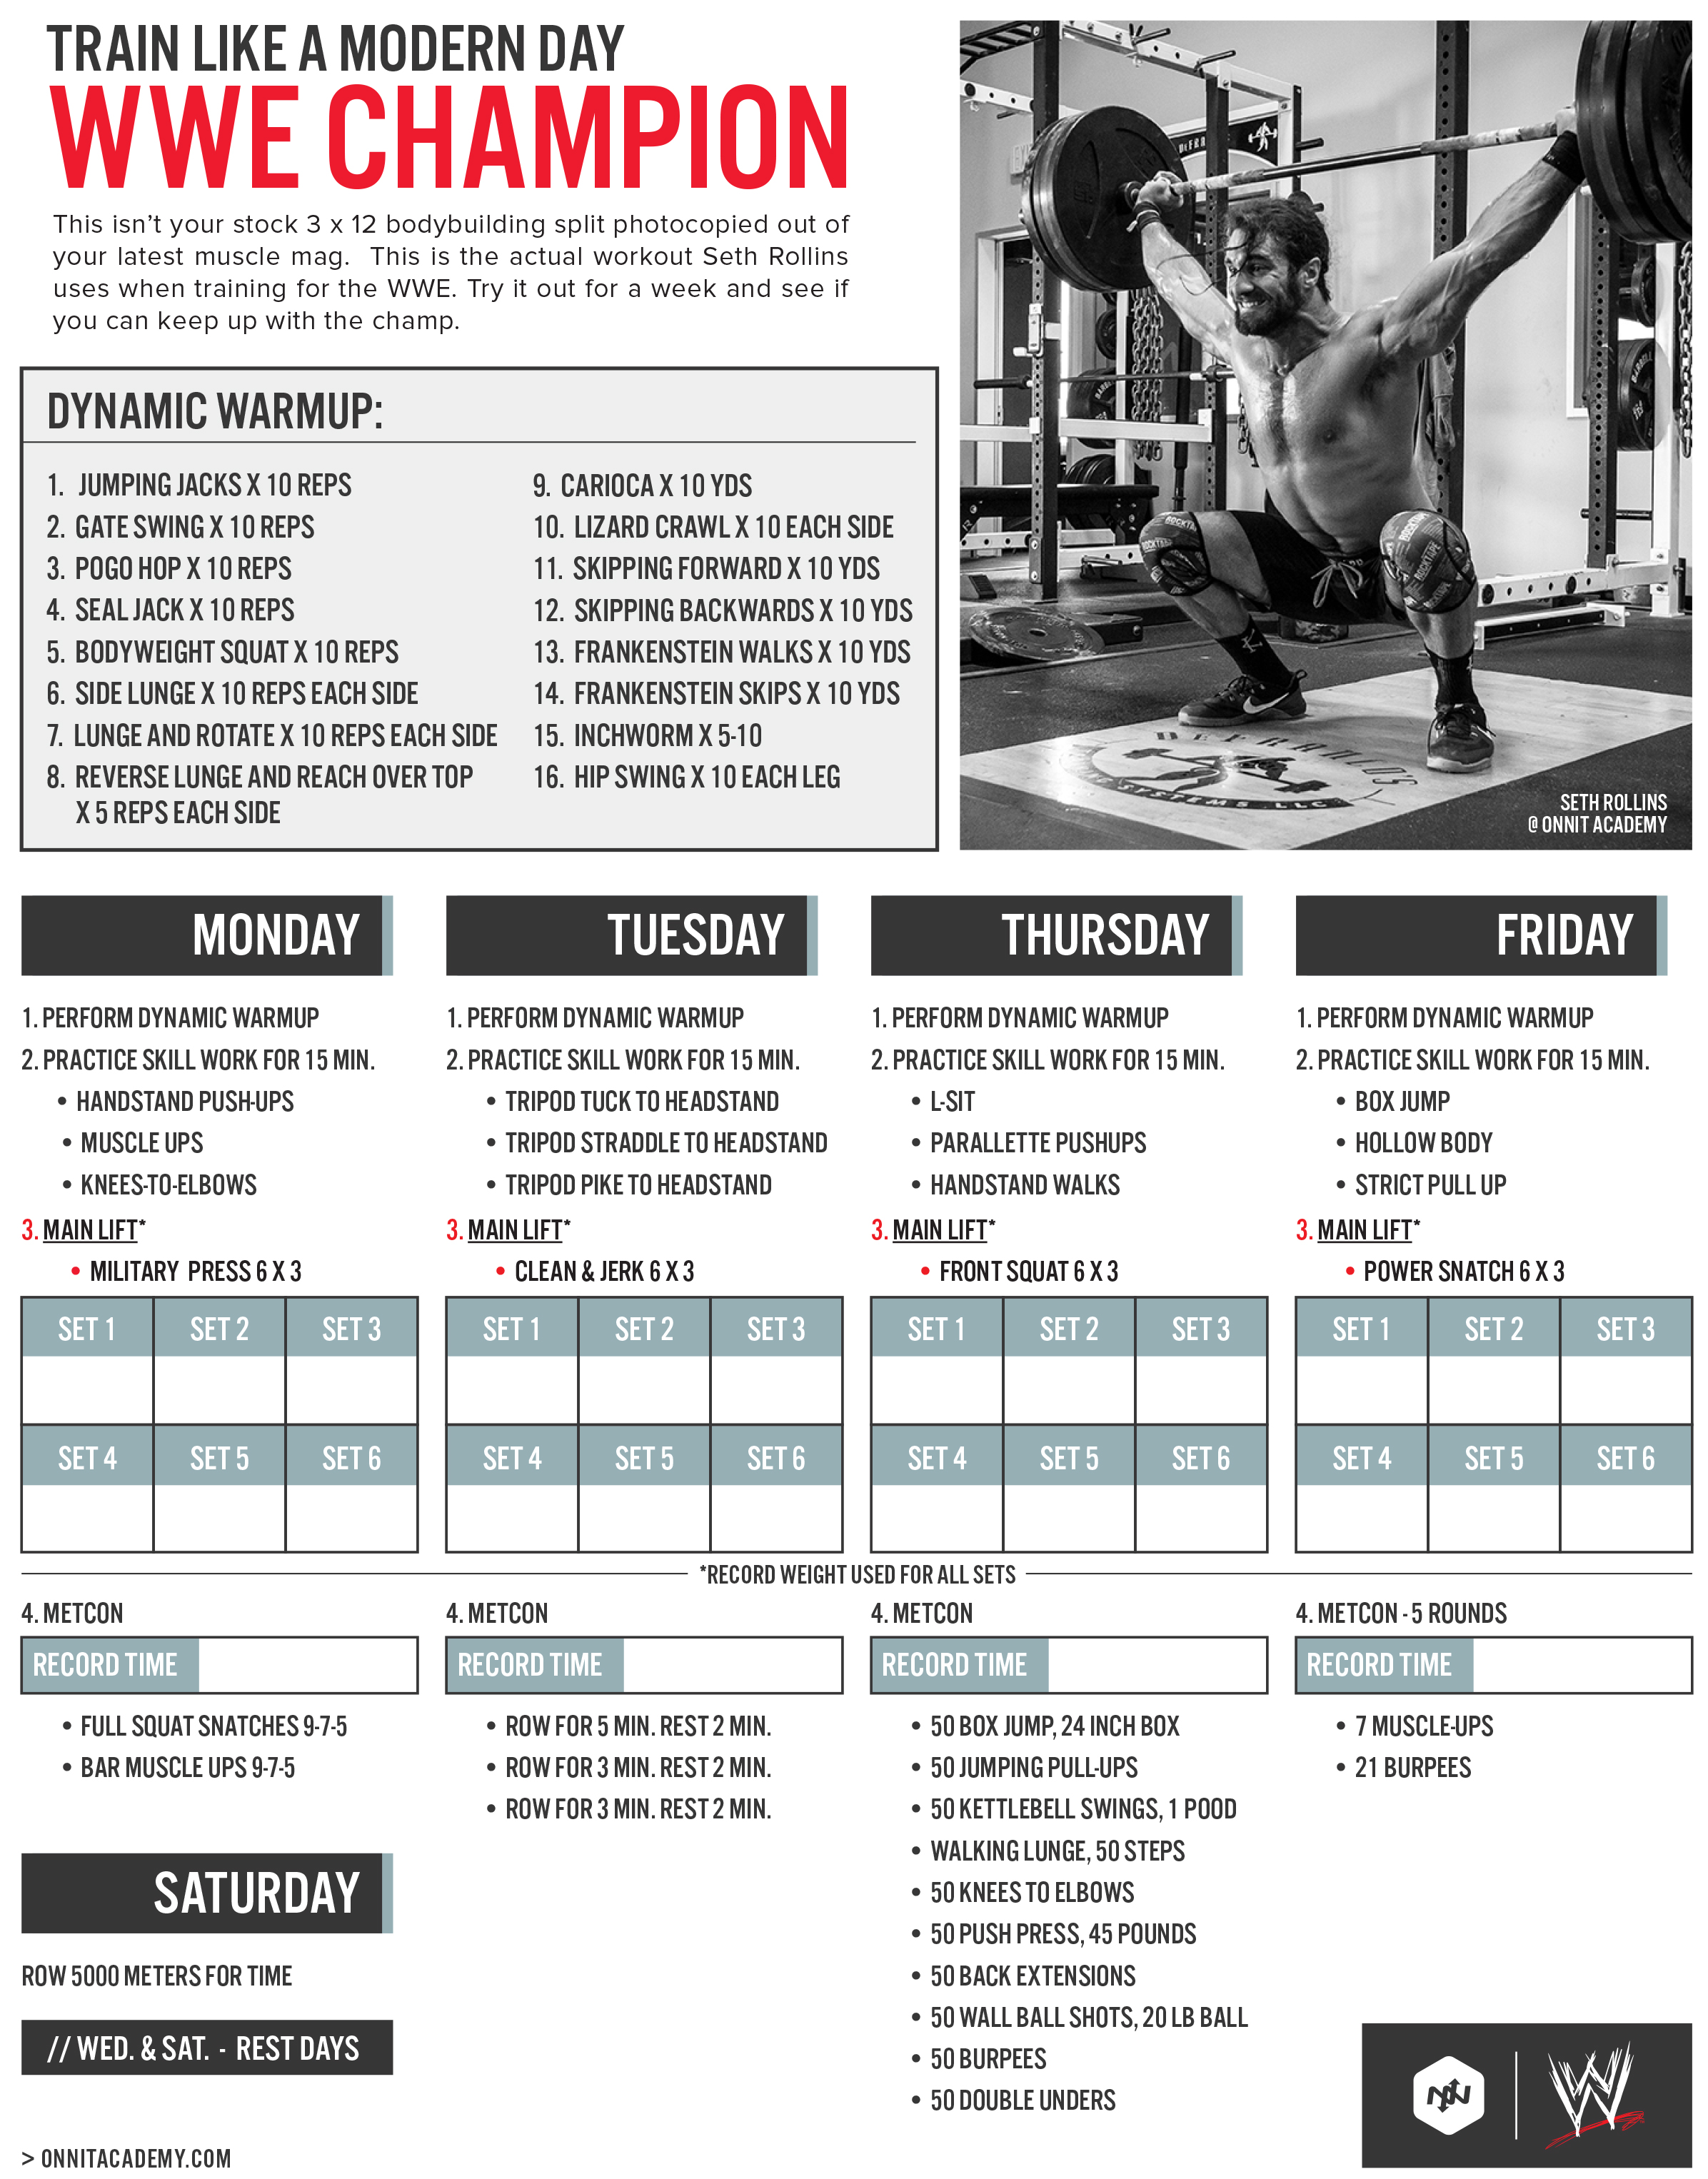 Train like a modern wwe champion official seth rollins workout pdf nvjuhfo Choice Image